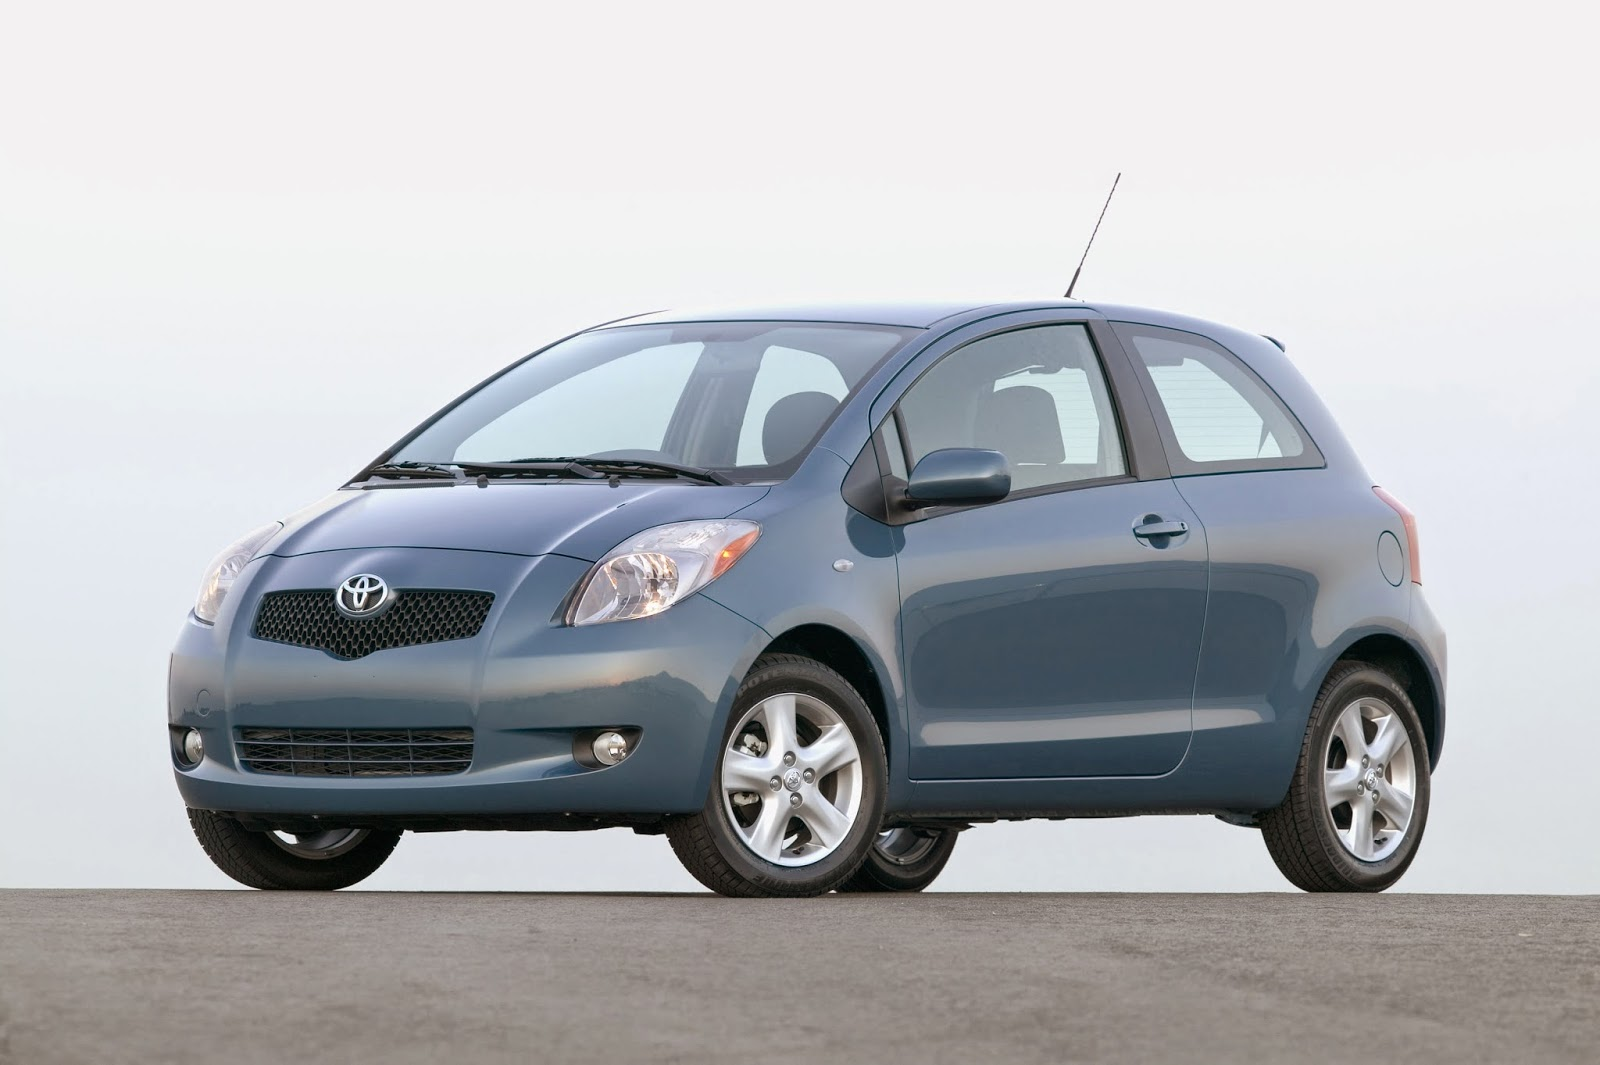 2007 Toyota Yaris liftback